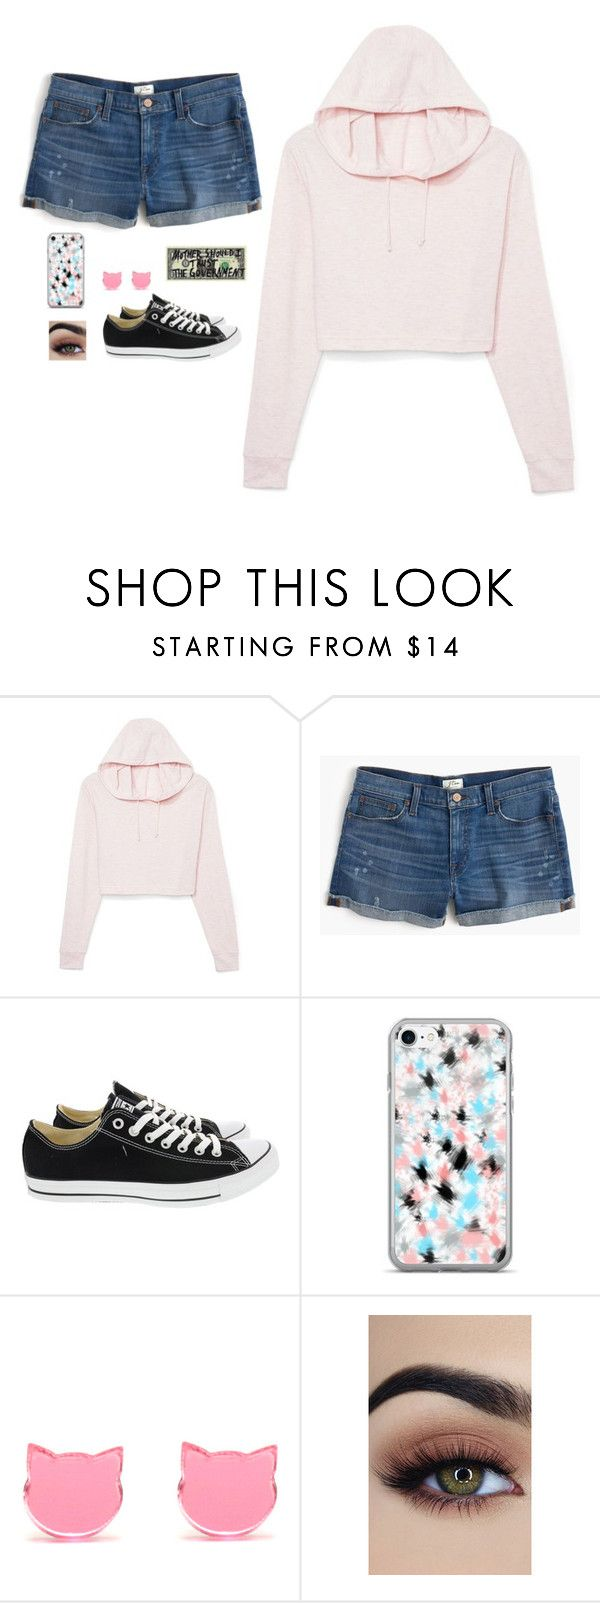 """Untitled #4206"" by if-i-were-famous1 ❤ liked on Polyvore featuring J.Crew and Converse"